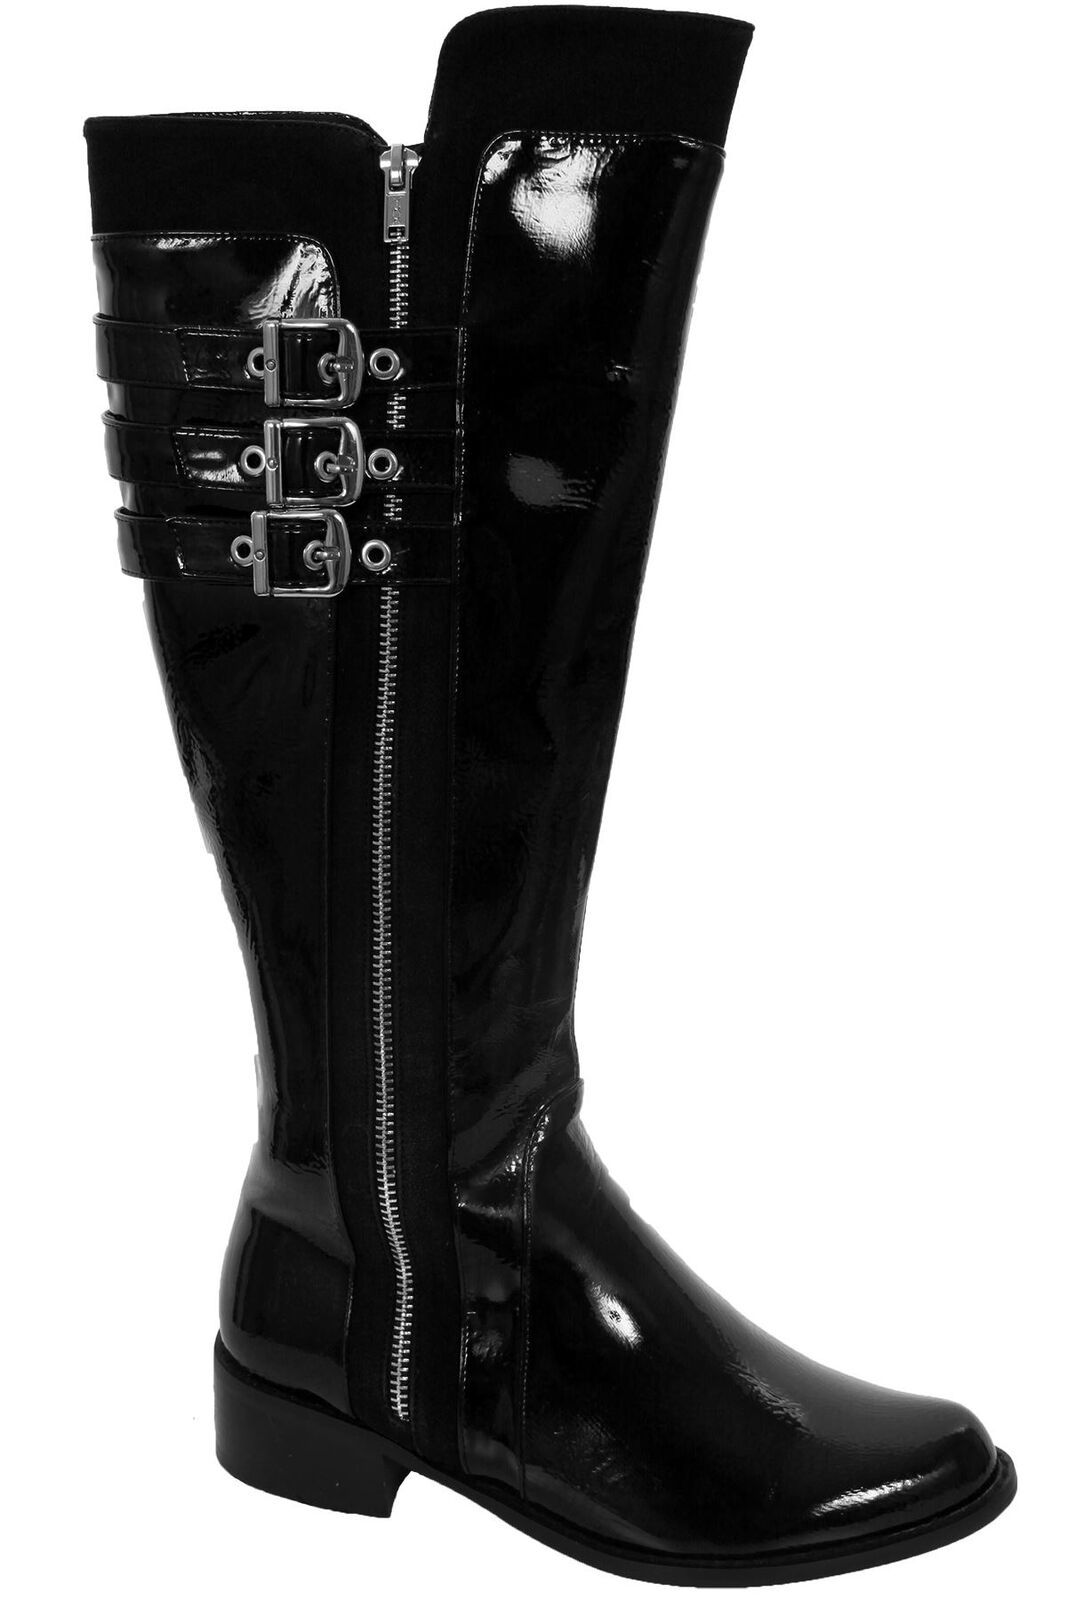 Ladies Patent Triple Buckle Buckle Buckle Strap Low Heel Women's Knee High Boots shoes 24630b